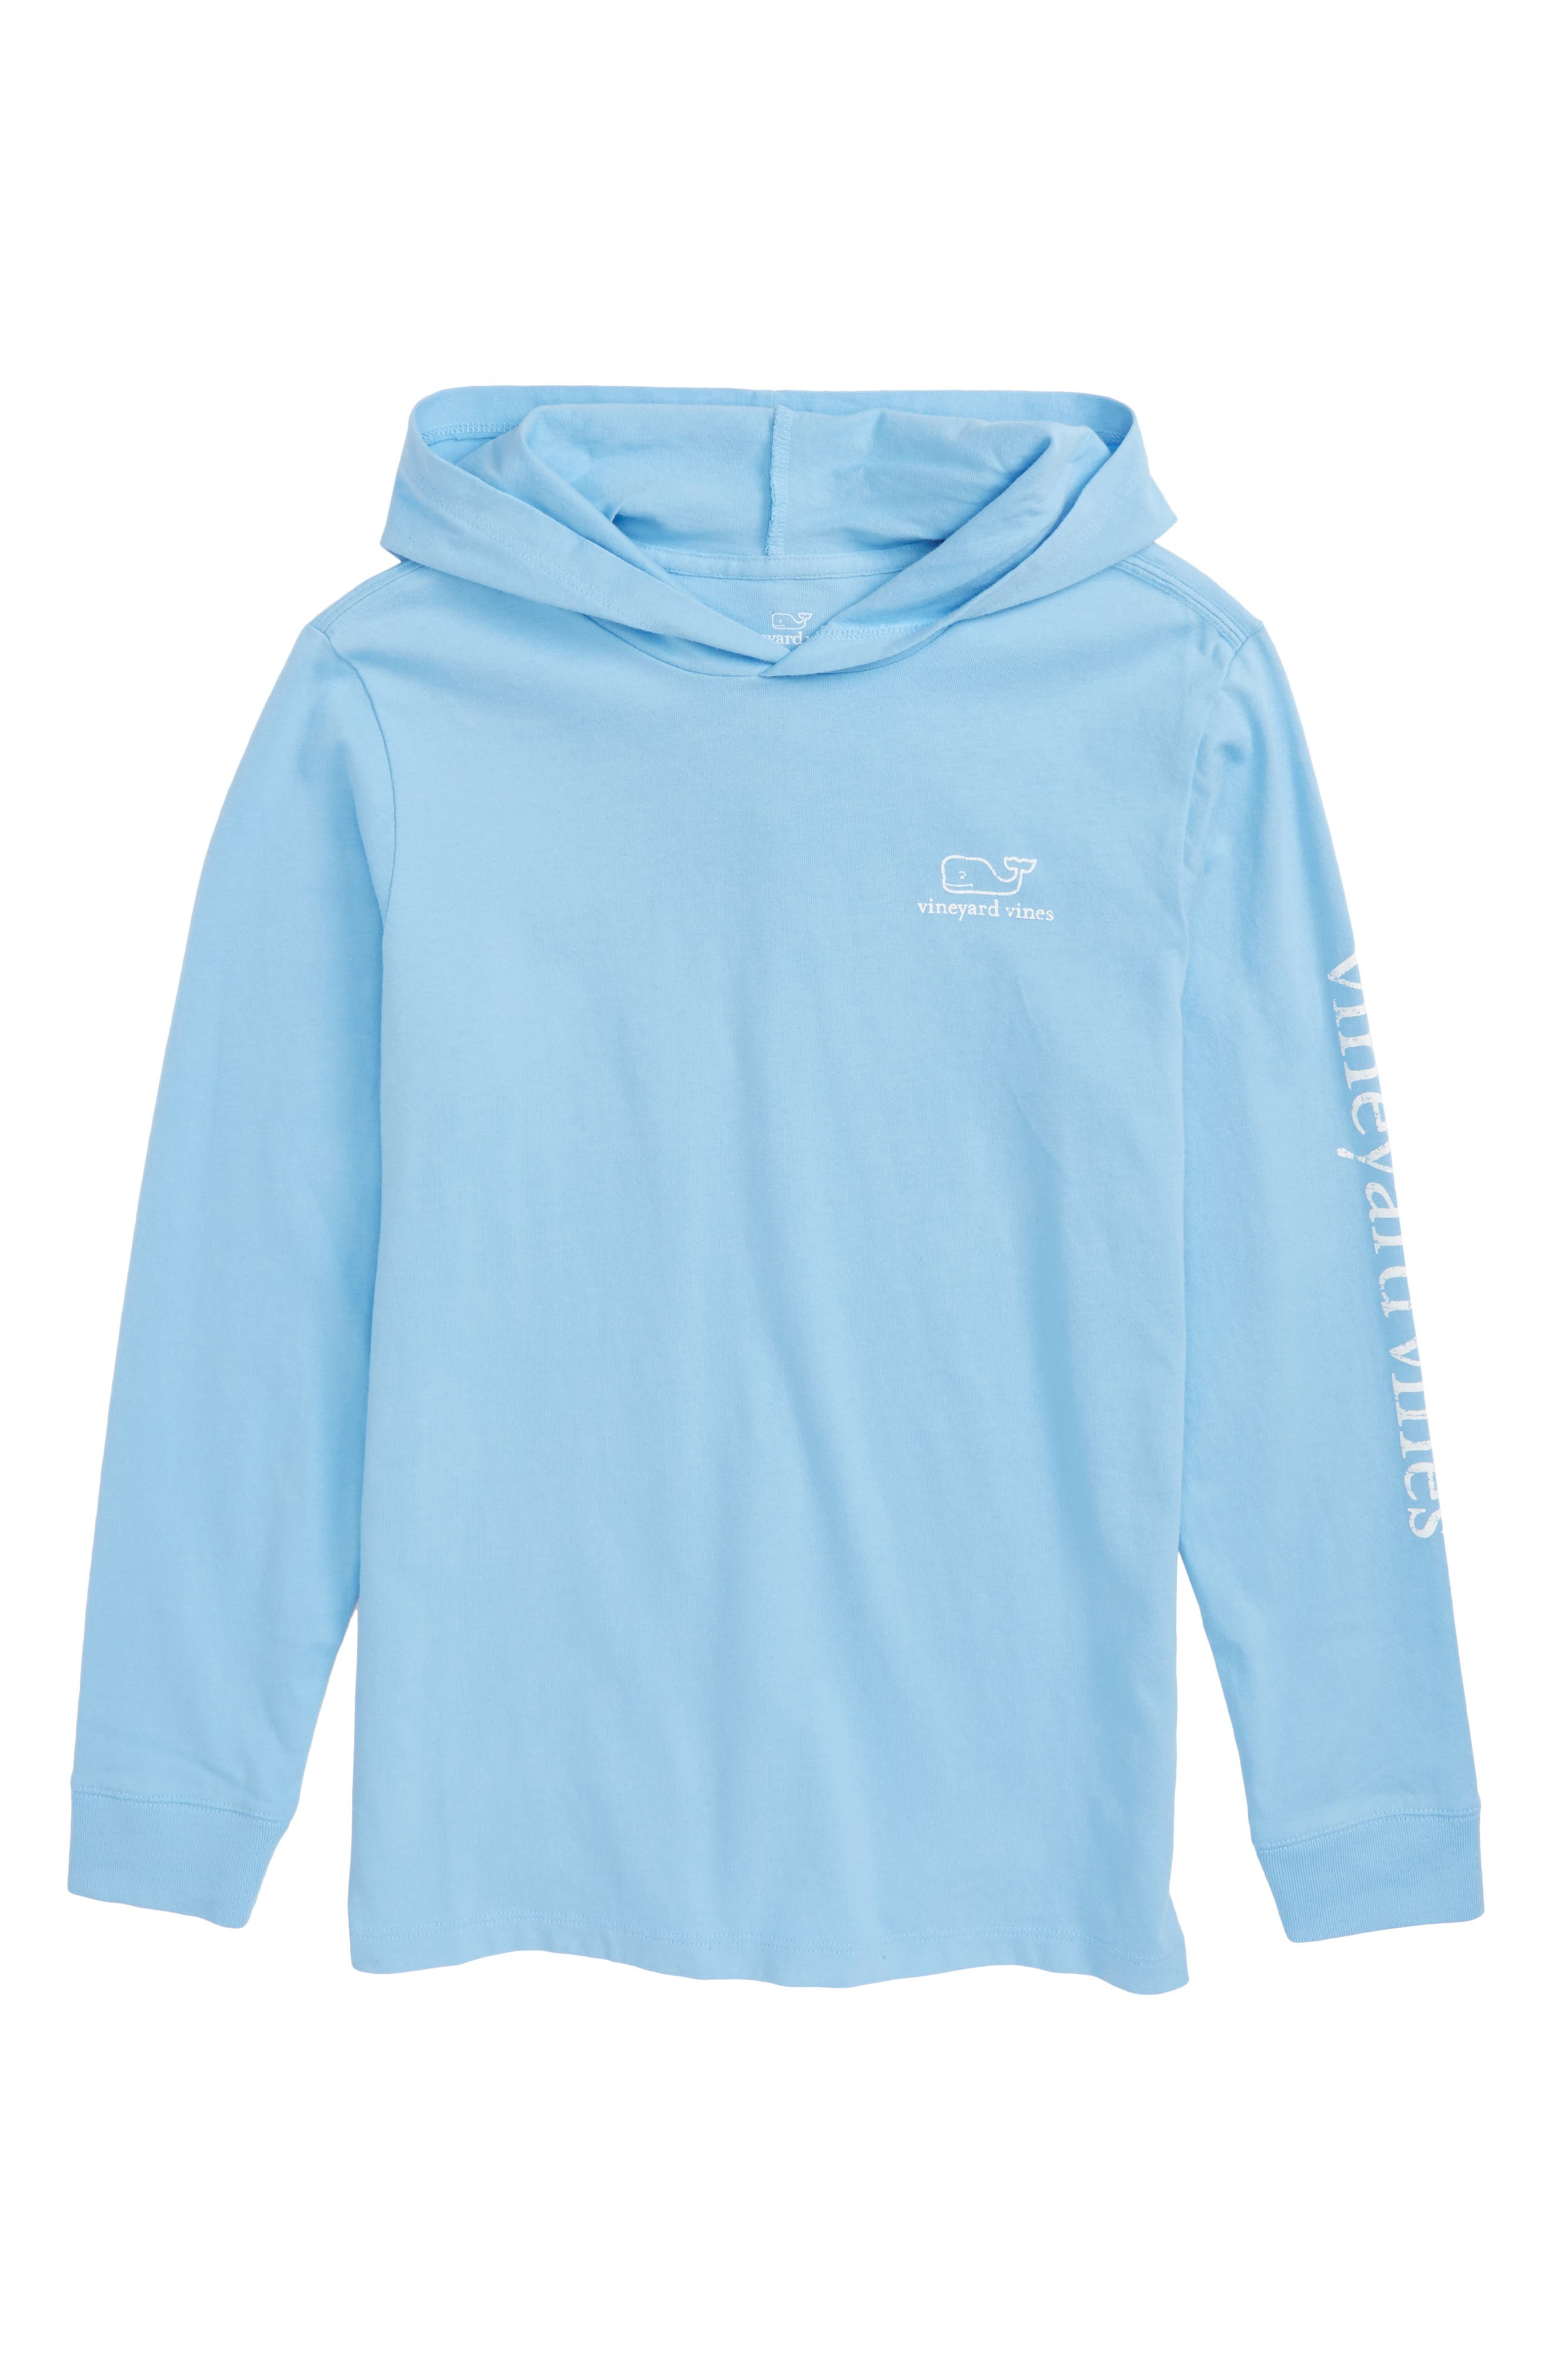 Performance Hooded Pullover,                             Main thumbnail 1, color,                             Ocean Breeze